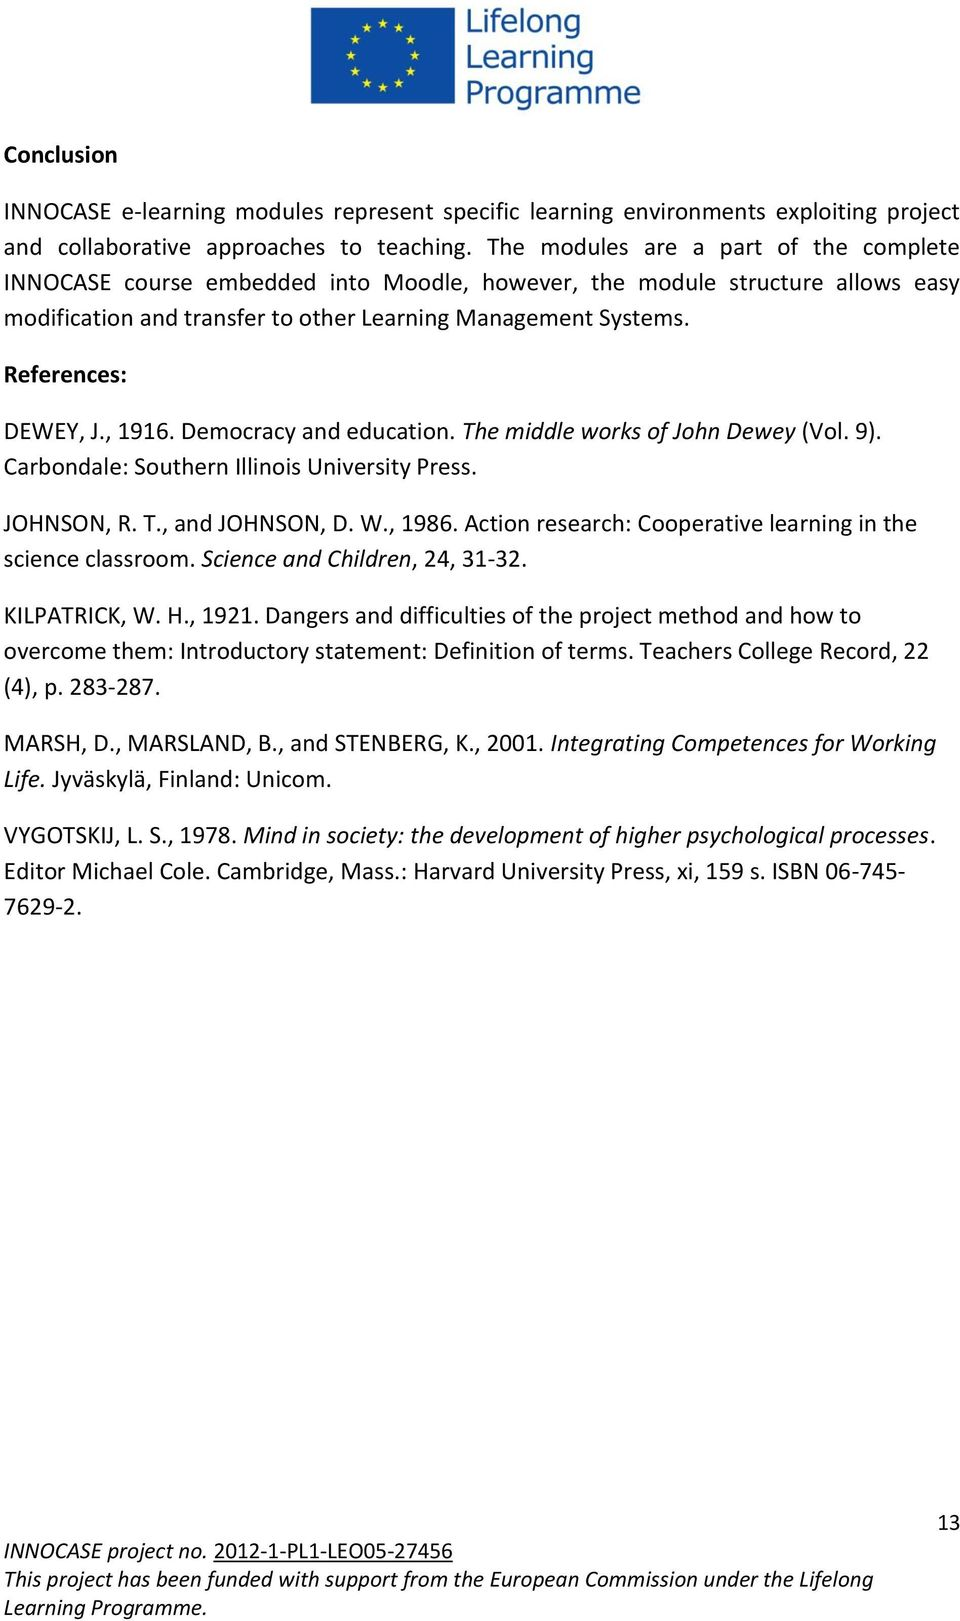 References: DEWEY, J., 1916. Democracy and education. The middle works of John Dewey (Vol. 9). Carbondale: Southern Illinois University Press. JOHNSON, R. T., and JOHNSON, D. W., 1986.